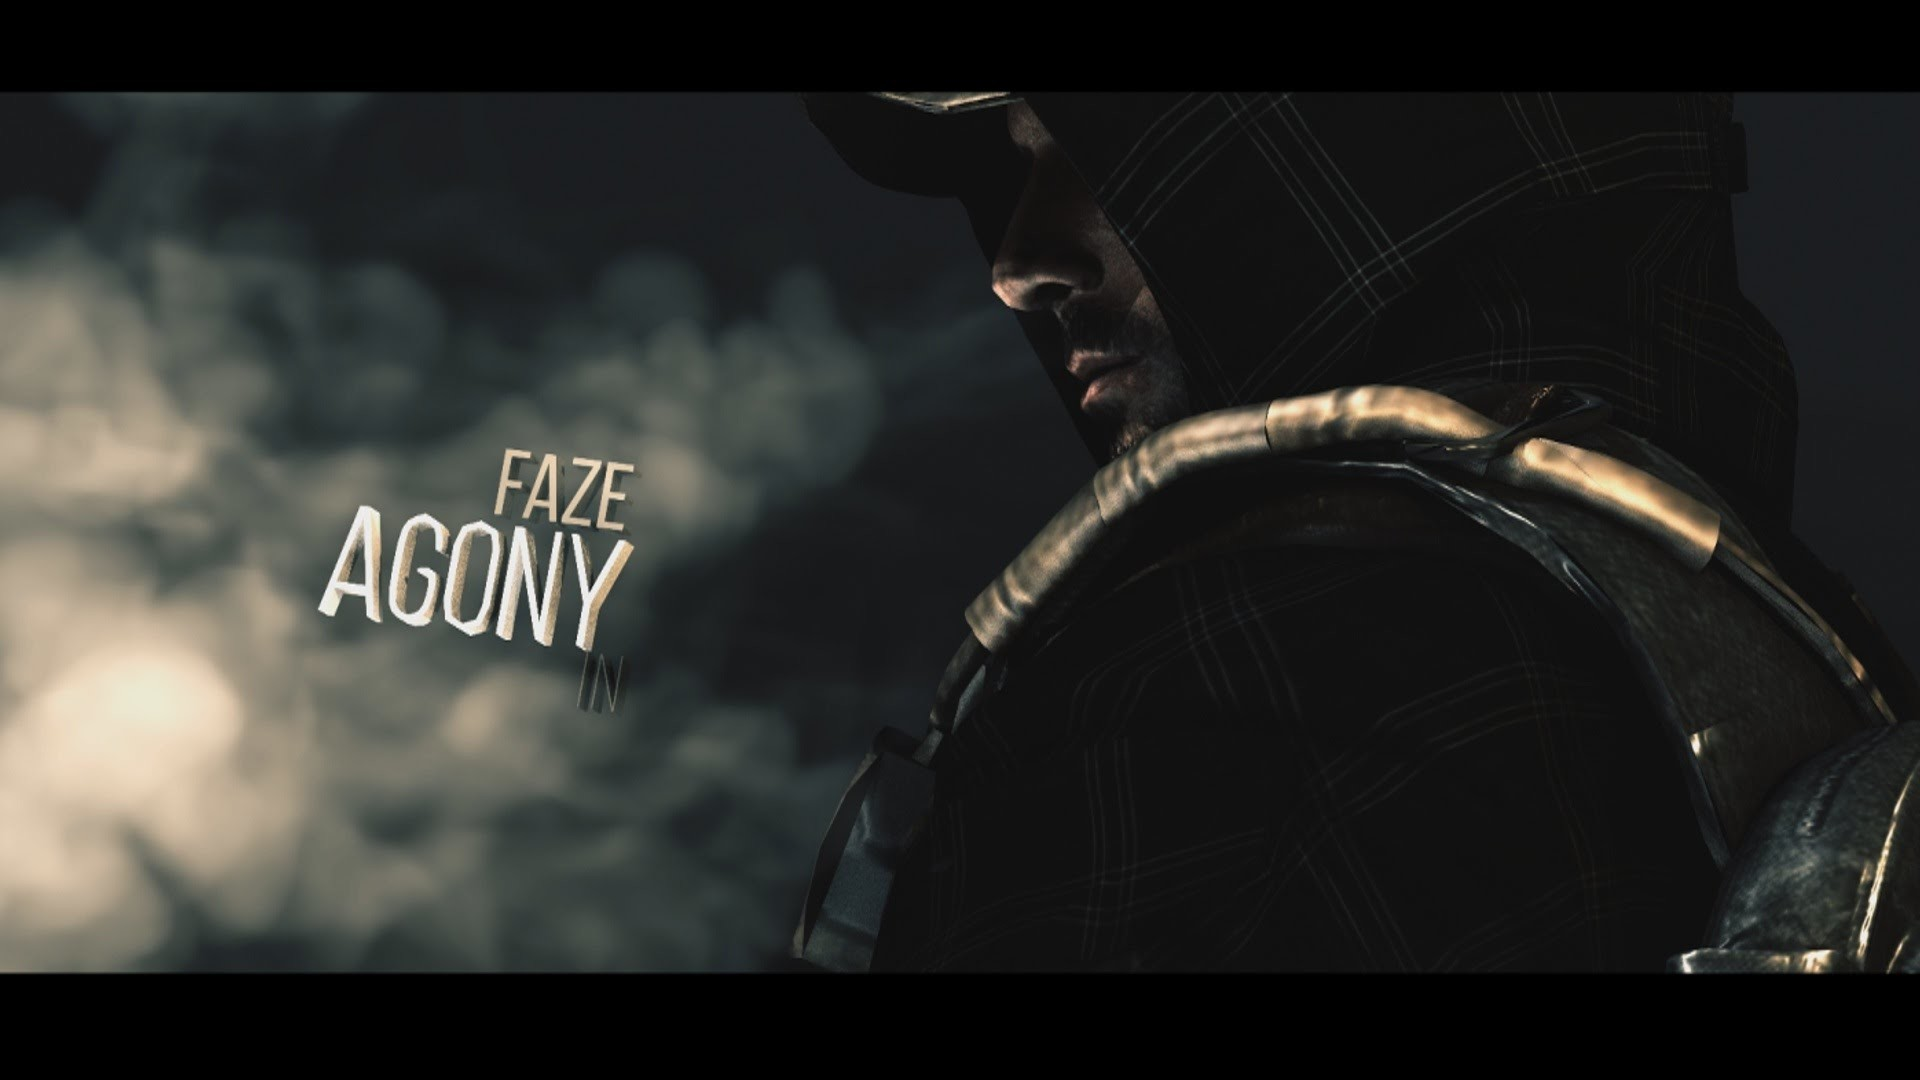 1920x1080 FaZe Agony: We Are Outnumbered - A Call of Duty Movie by NikkyyHD  #WeAreOutnumbered - YouTube